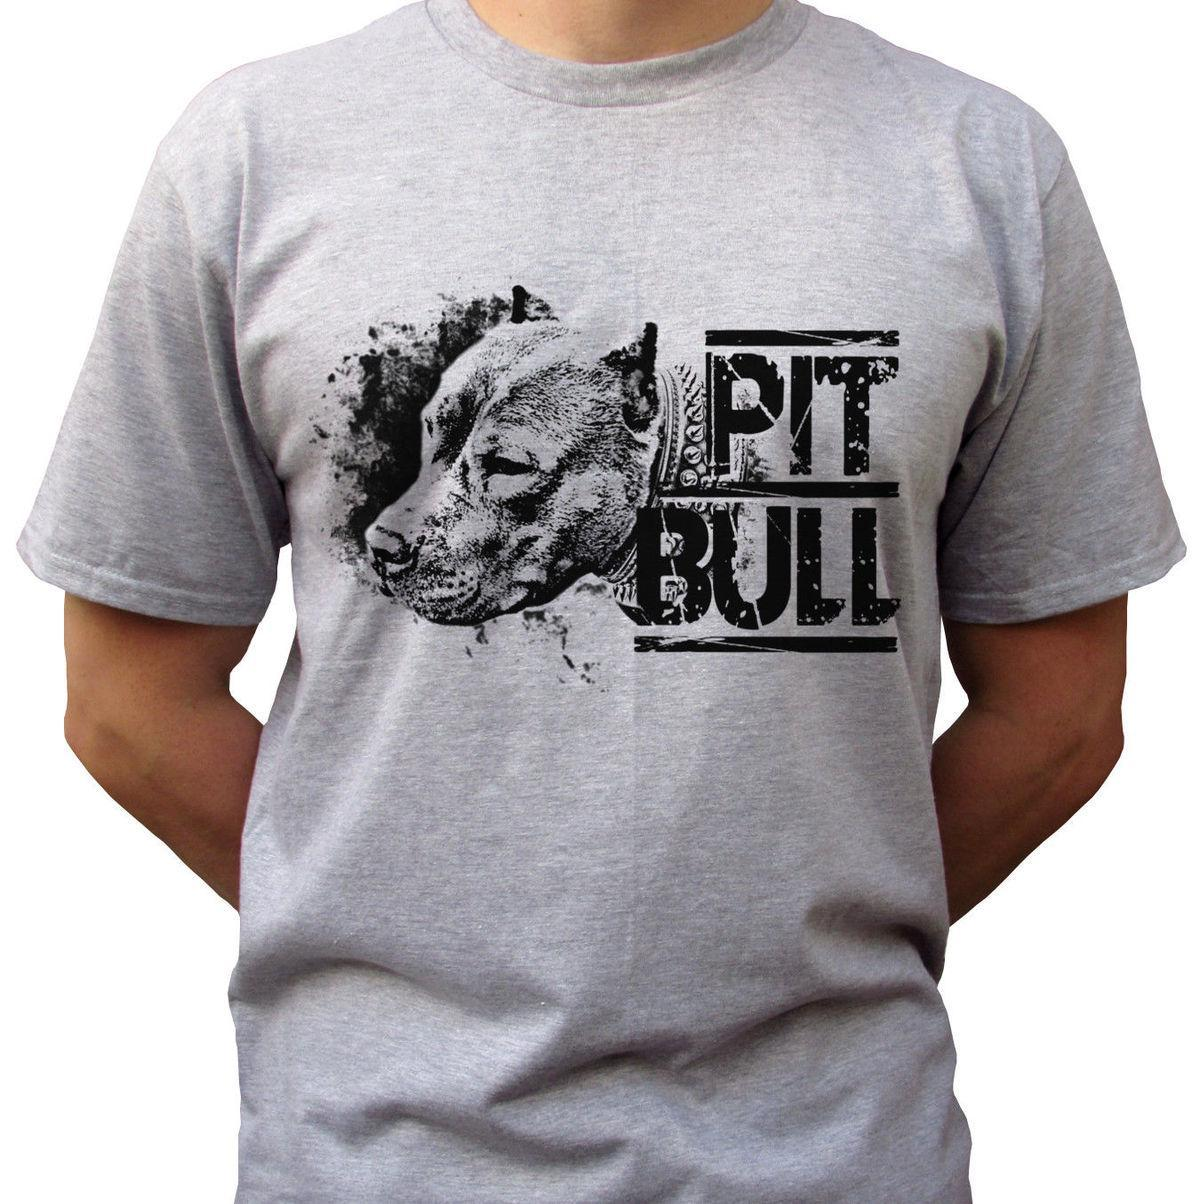 8d7451411 Pitbull Grey T Shirt Top Pit Bull Tee Dog Design Mens Sizes Printed T Shirt  Funny T Shirts For Guys From Jie034, $14.67| DHgate.Com